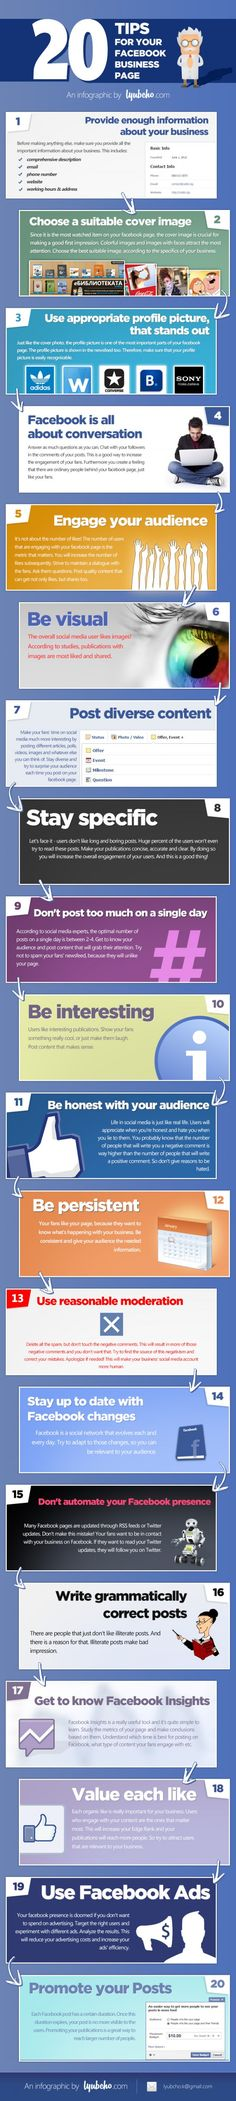 20 Success Tips For Your Facebook Business Page [Infographic]